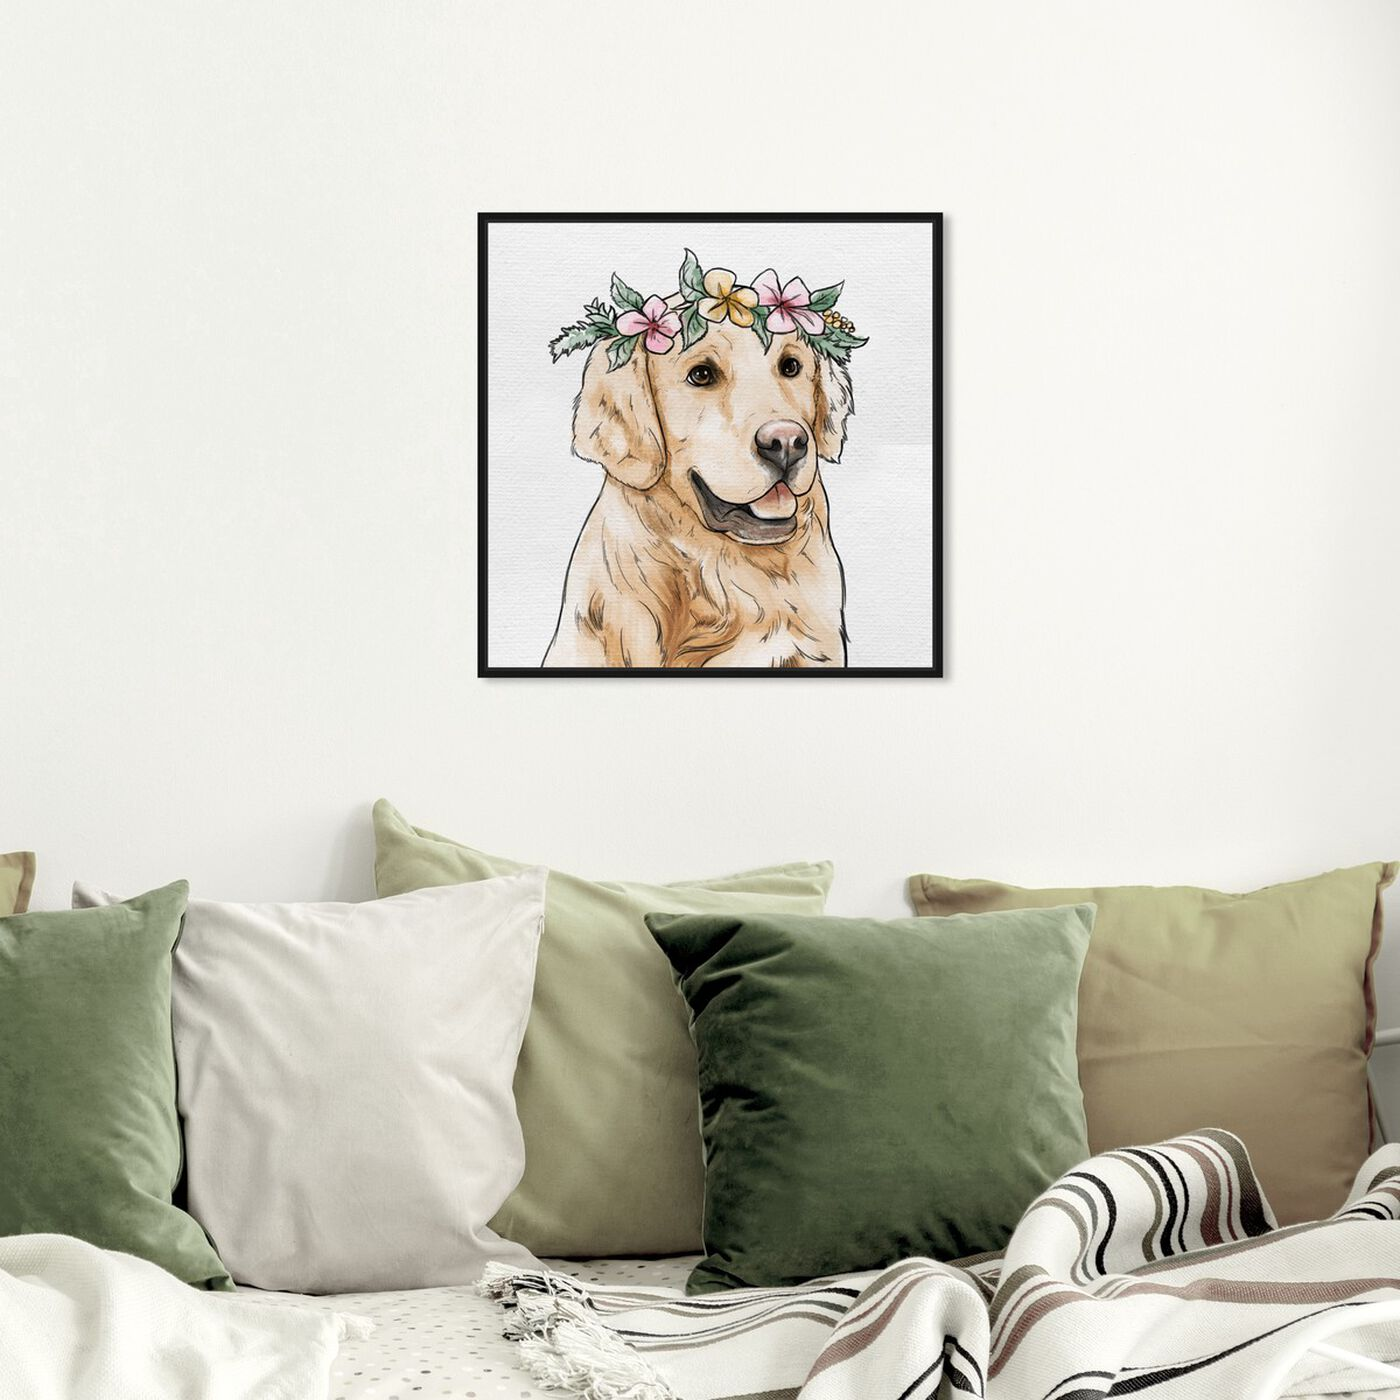 Hanging view of Floral Crowned Golden Retriever featuring animals and dogs and puppies art.